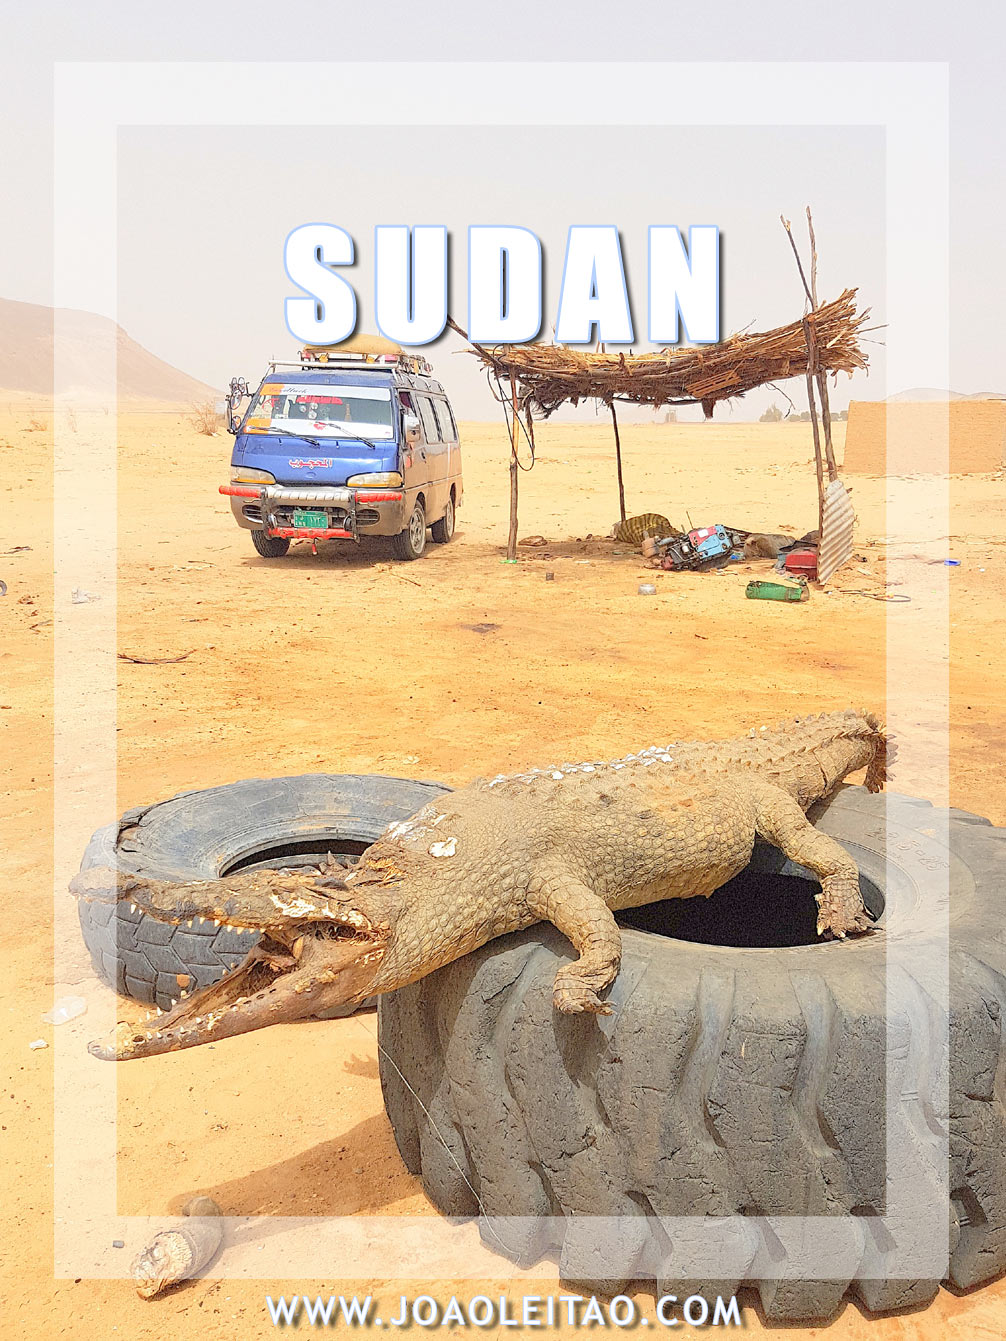 Amazing Places to Visit in Sudan